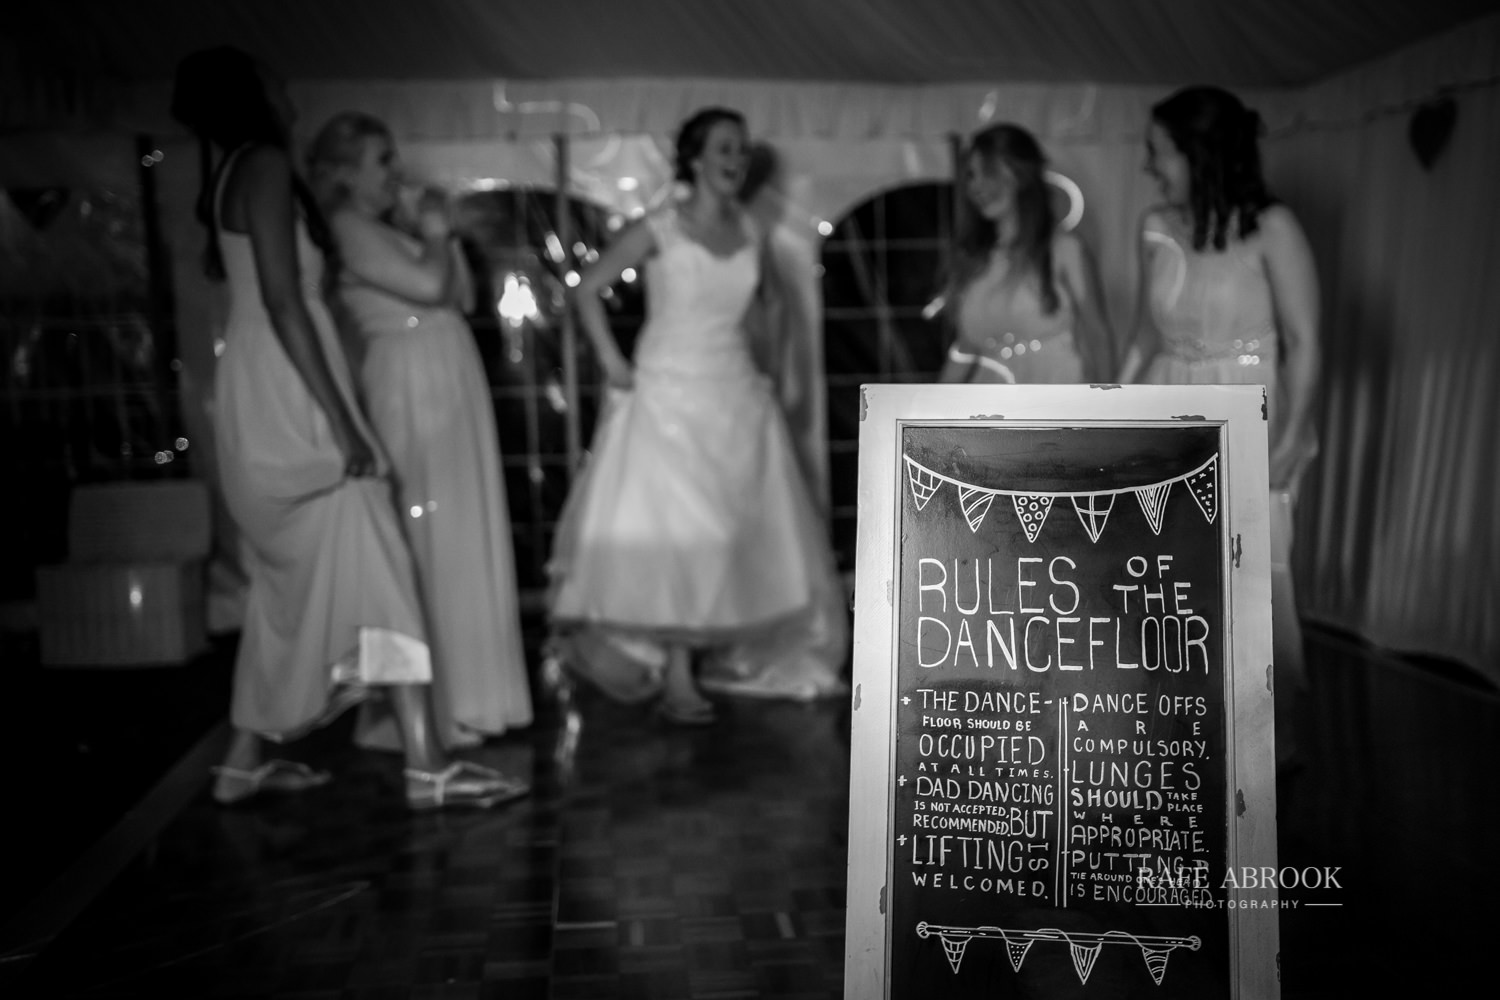 st albans cathedral wedding harpenden rafe abrook photography hertfordshire wedding photographer-1047.jpg